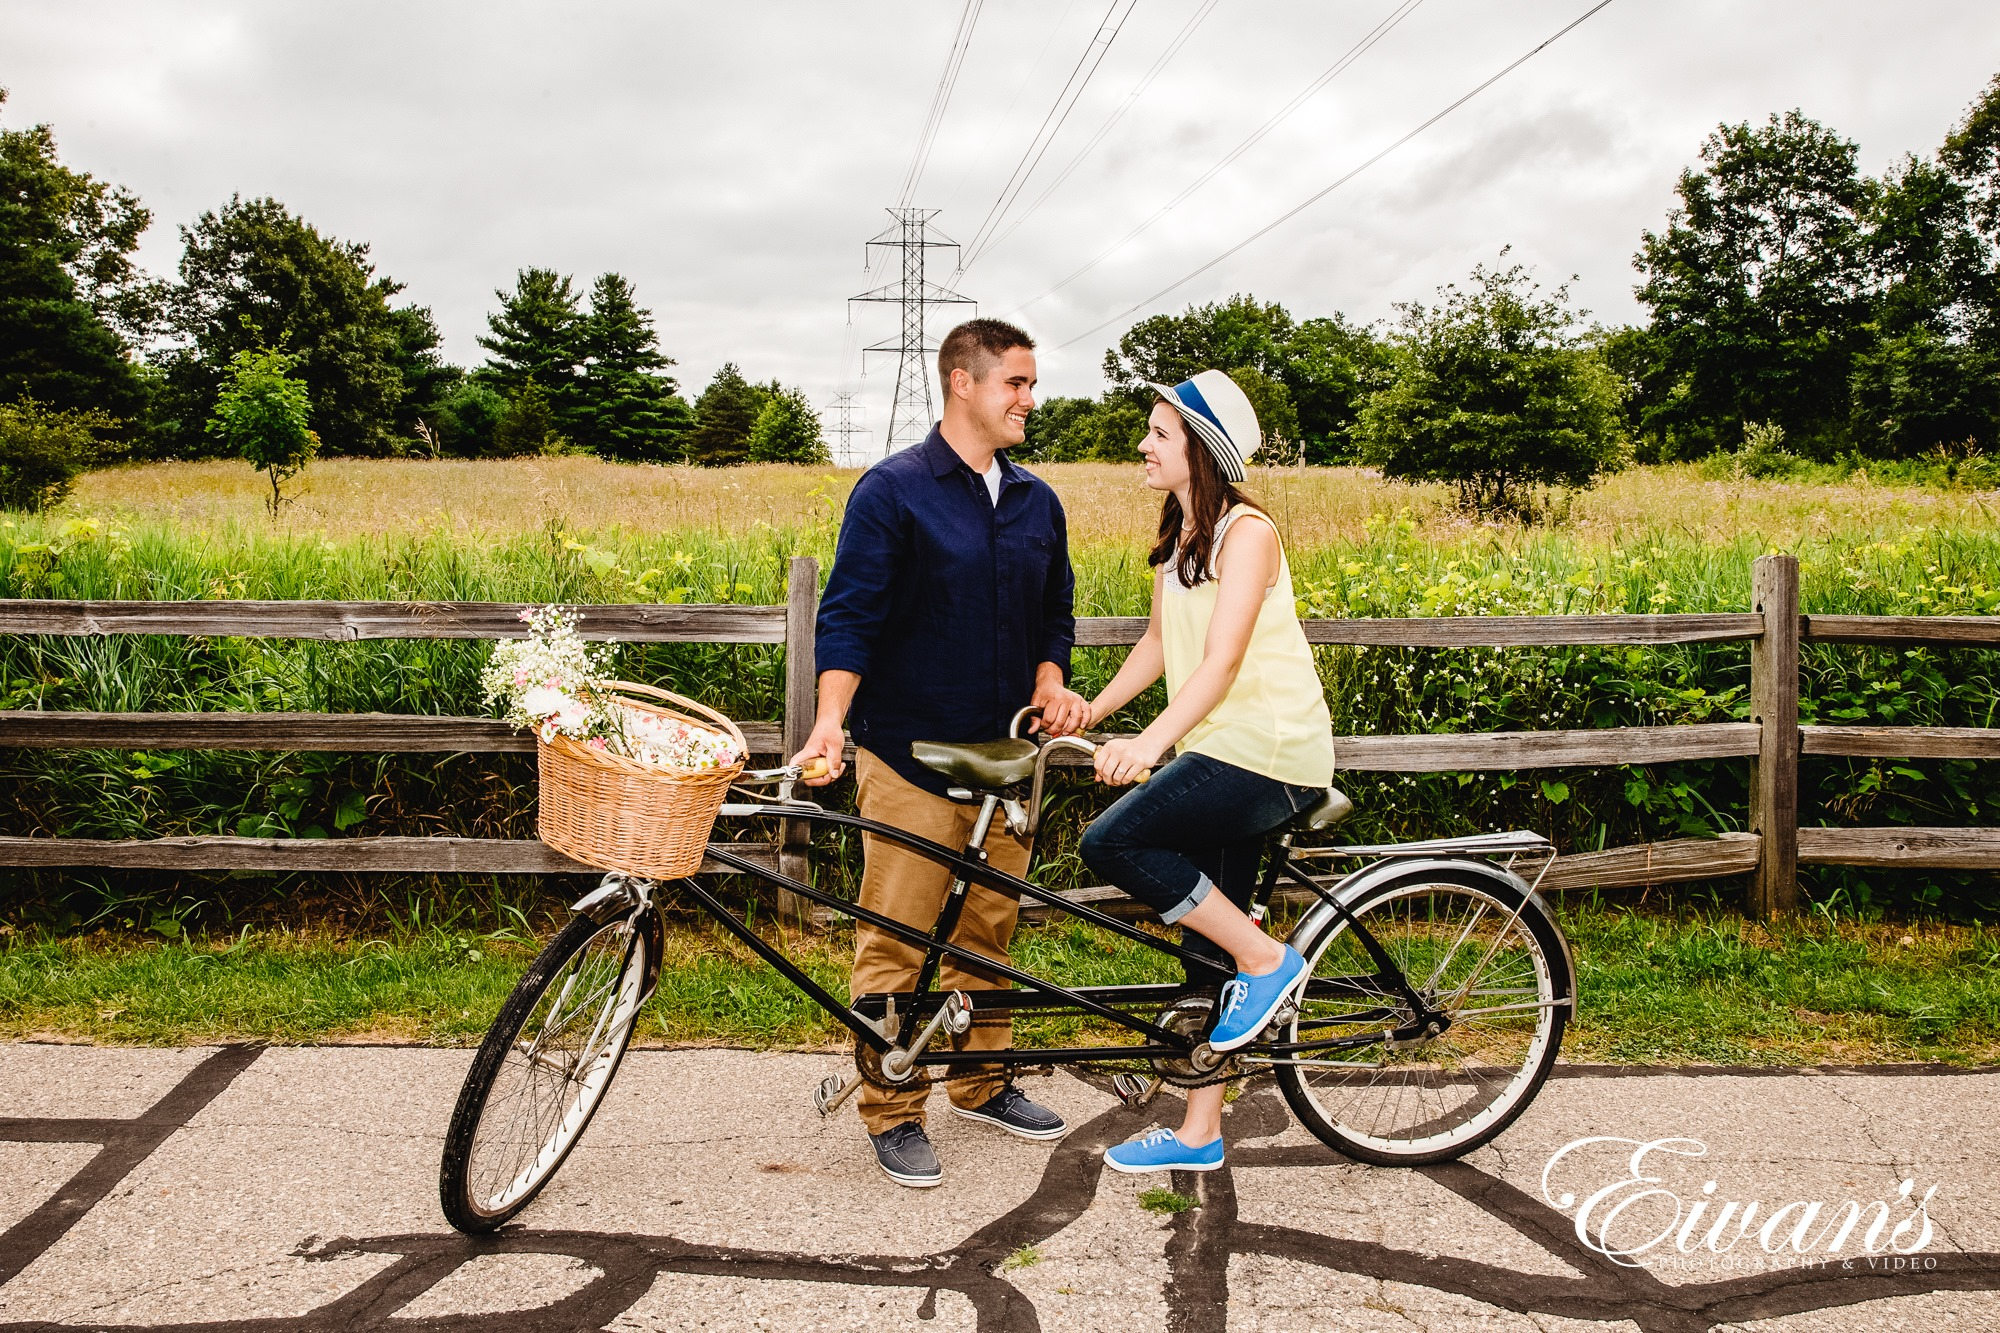 Image of an engaged man and woman on a two person bike